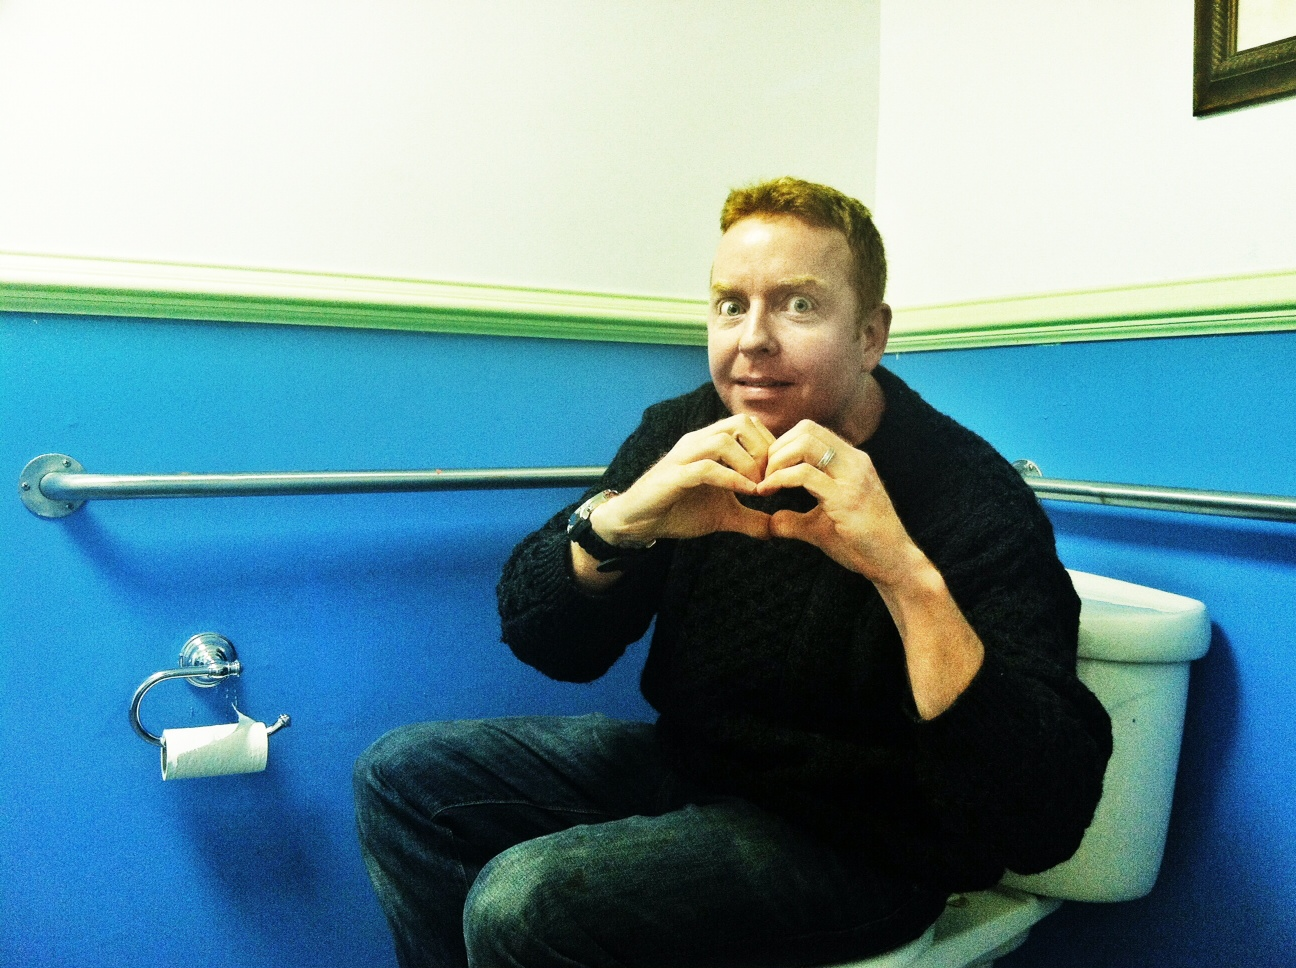 Dave hearts you...on the toilet.